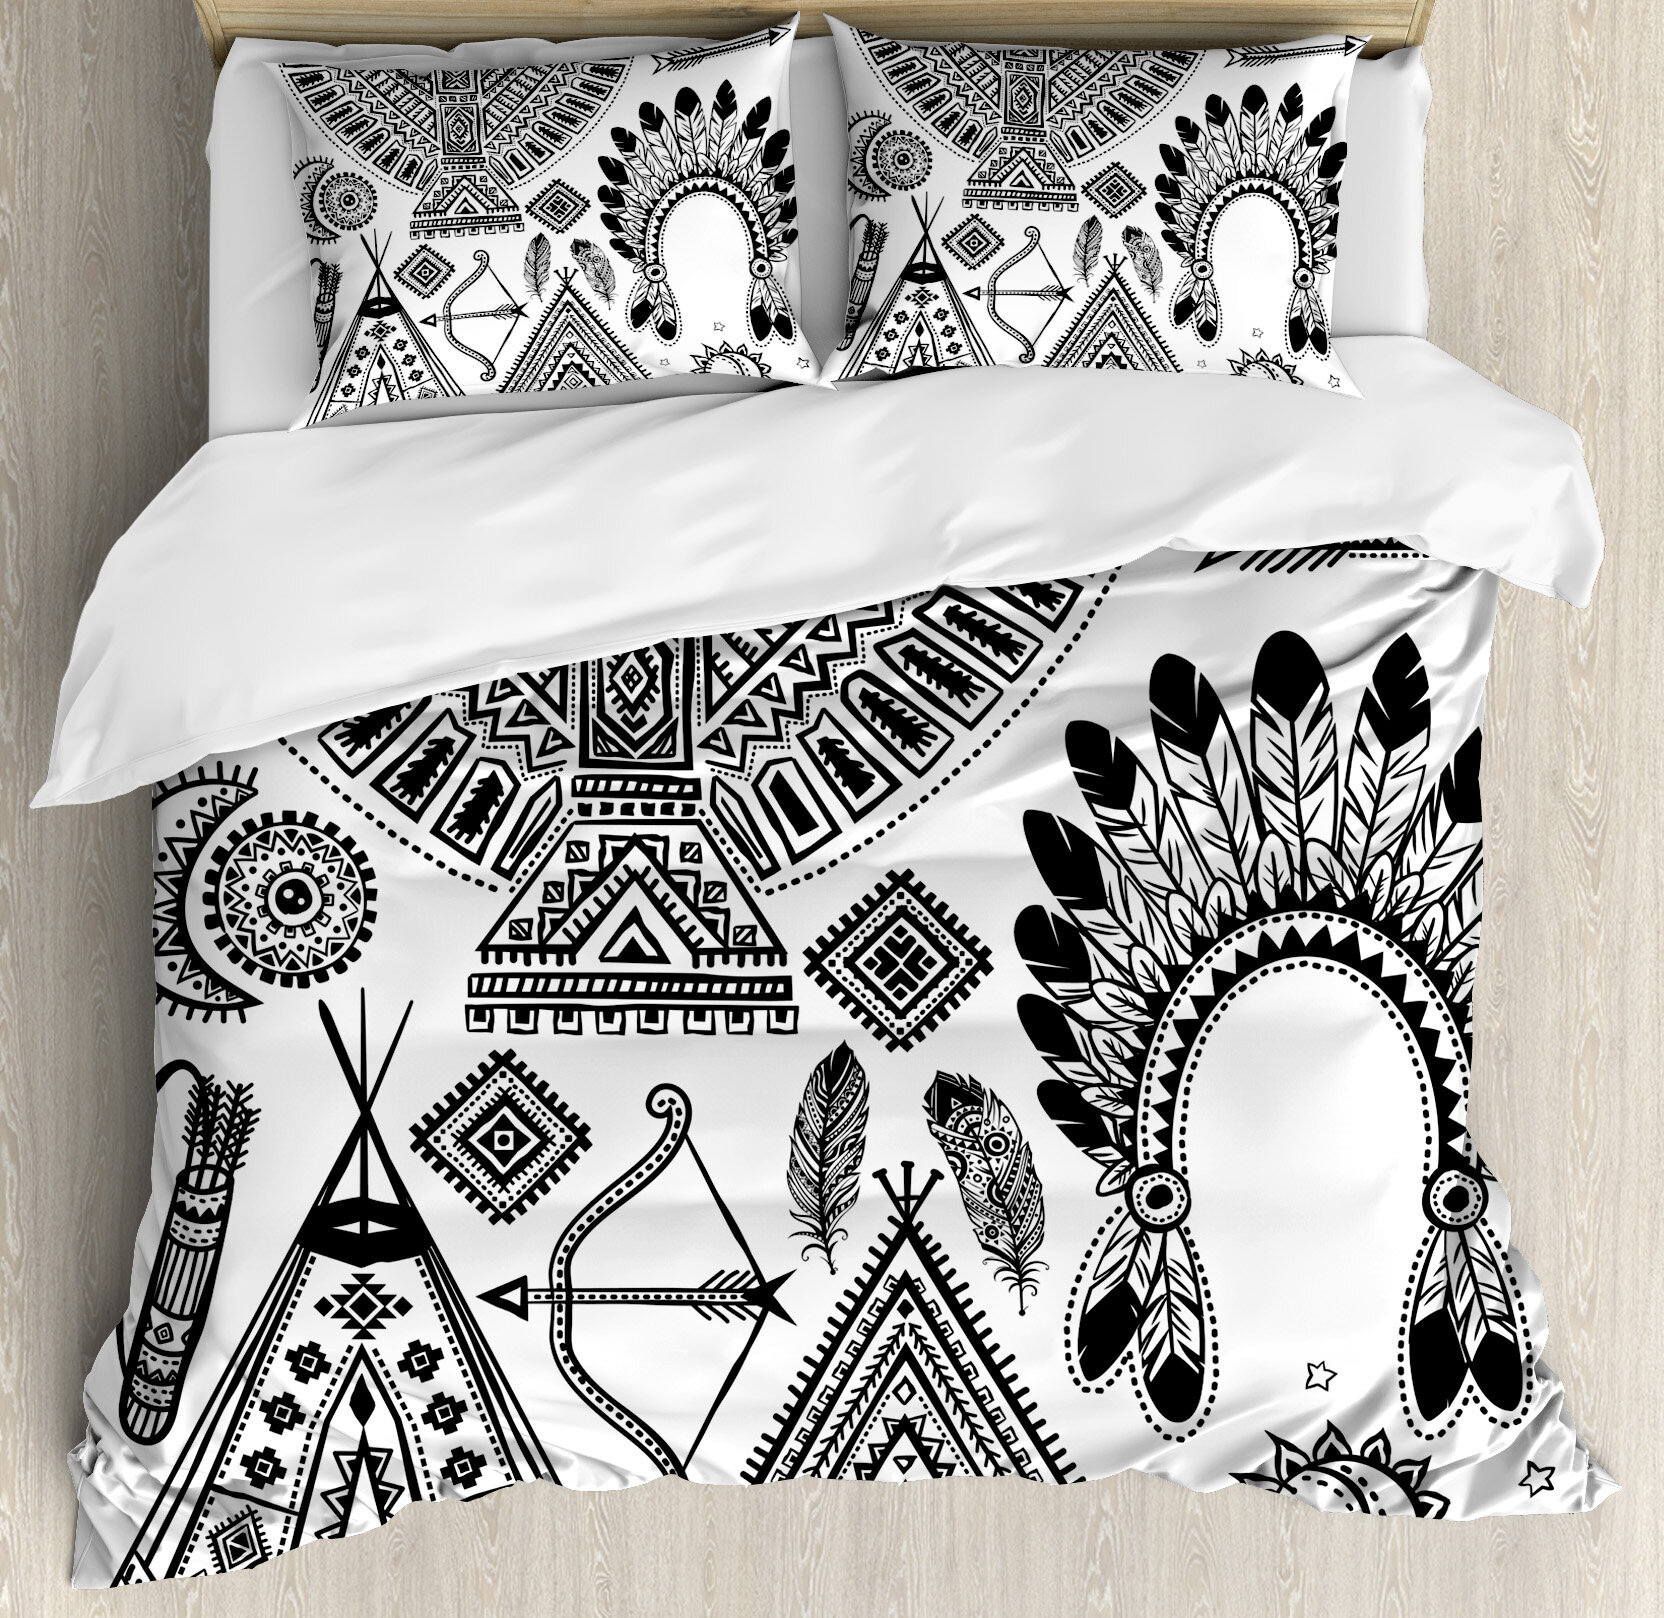 idea beddingafrican southwest classy and beddingaztec bedding ingenious by african geometric aztec design safaribal white veratex pattern tribal comforter cover black print santa peachy duvet ranch